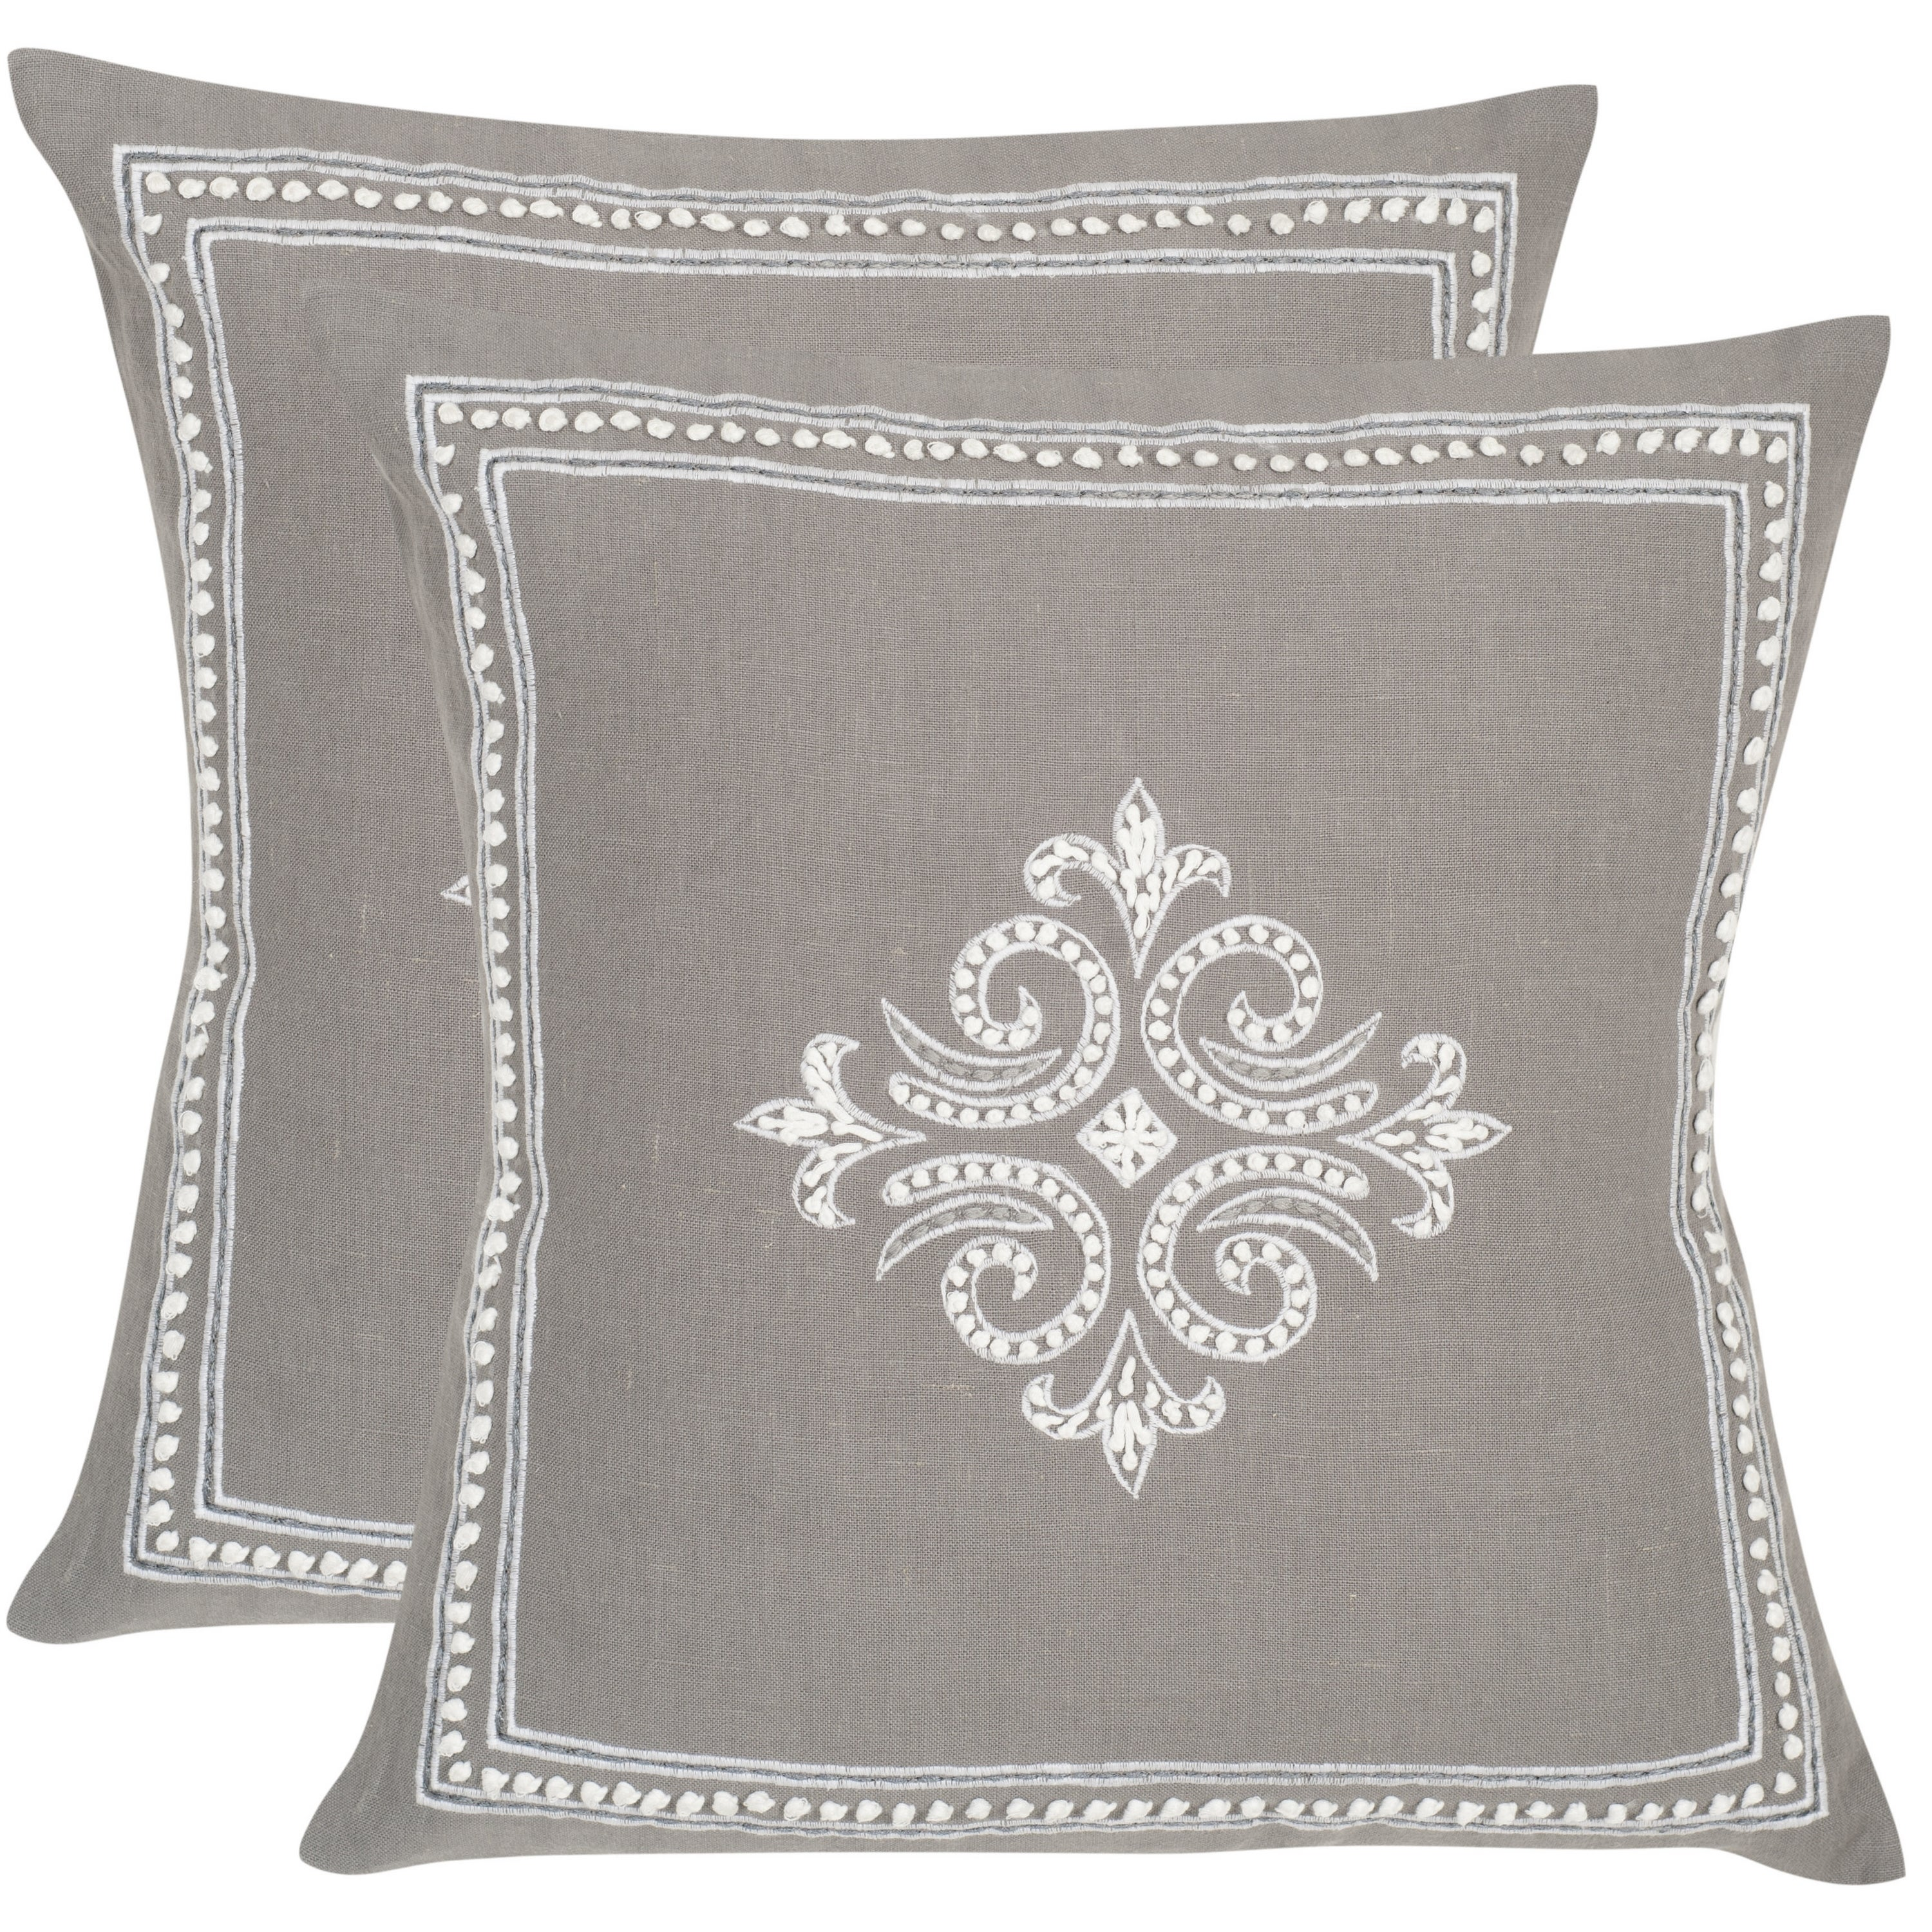 Safavieh Charleroi Sterling 20-inch Square Throw Pillows (Set of 2)